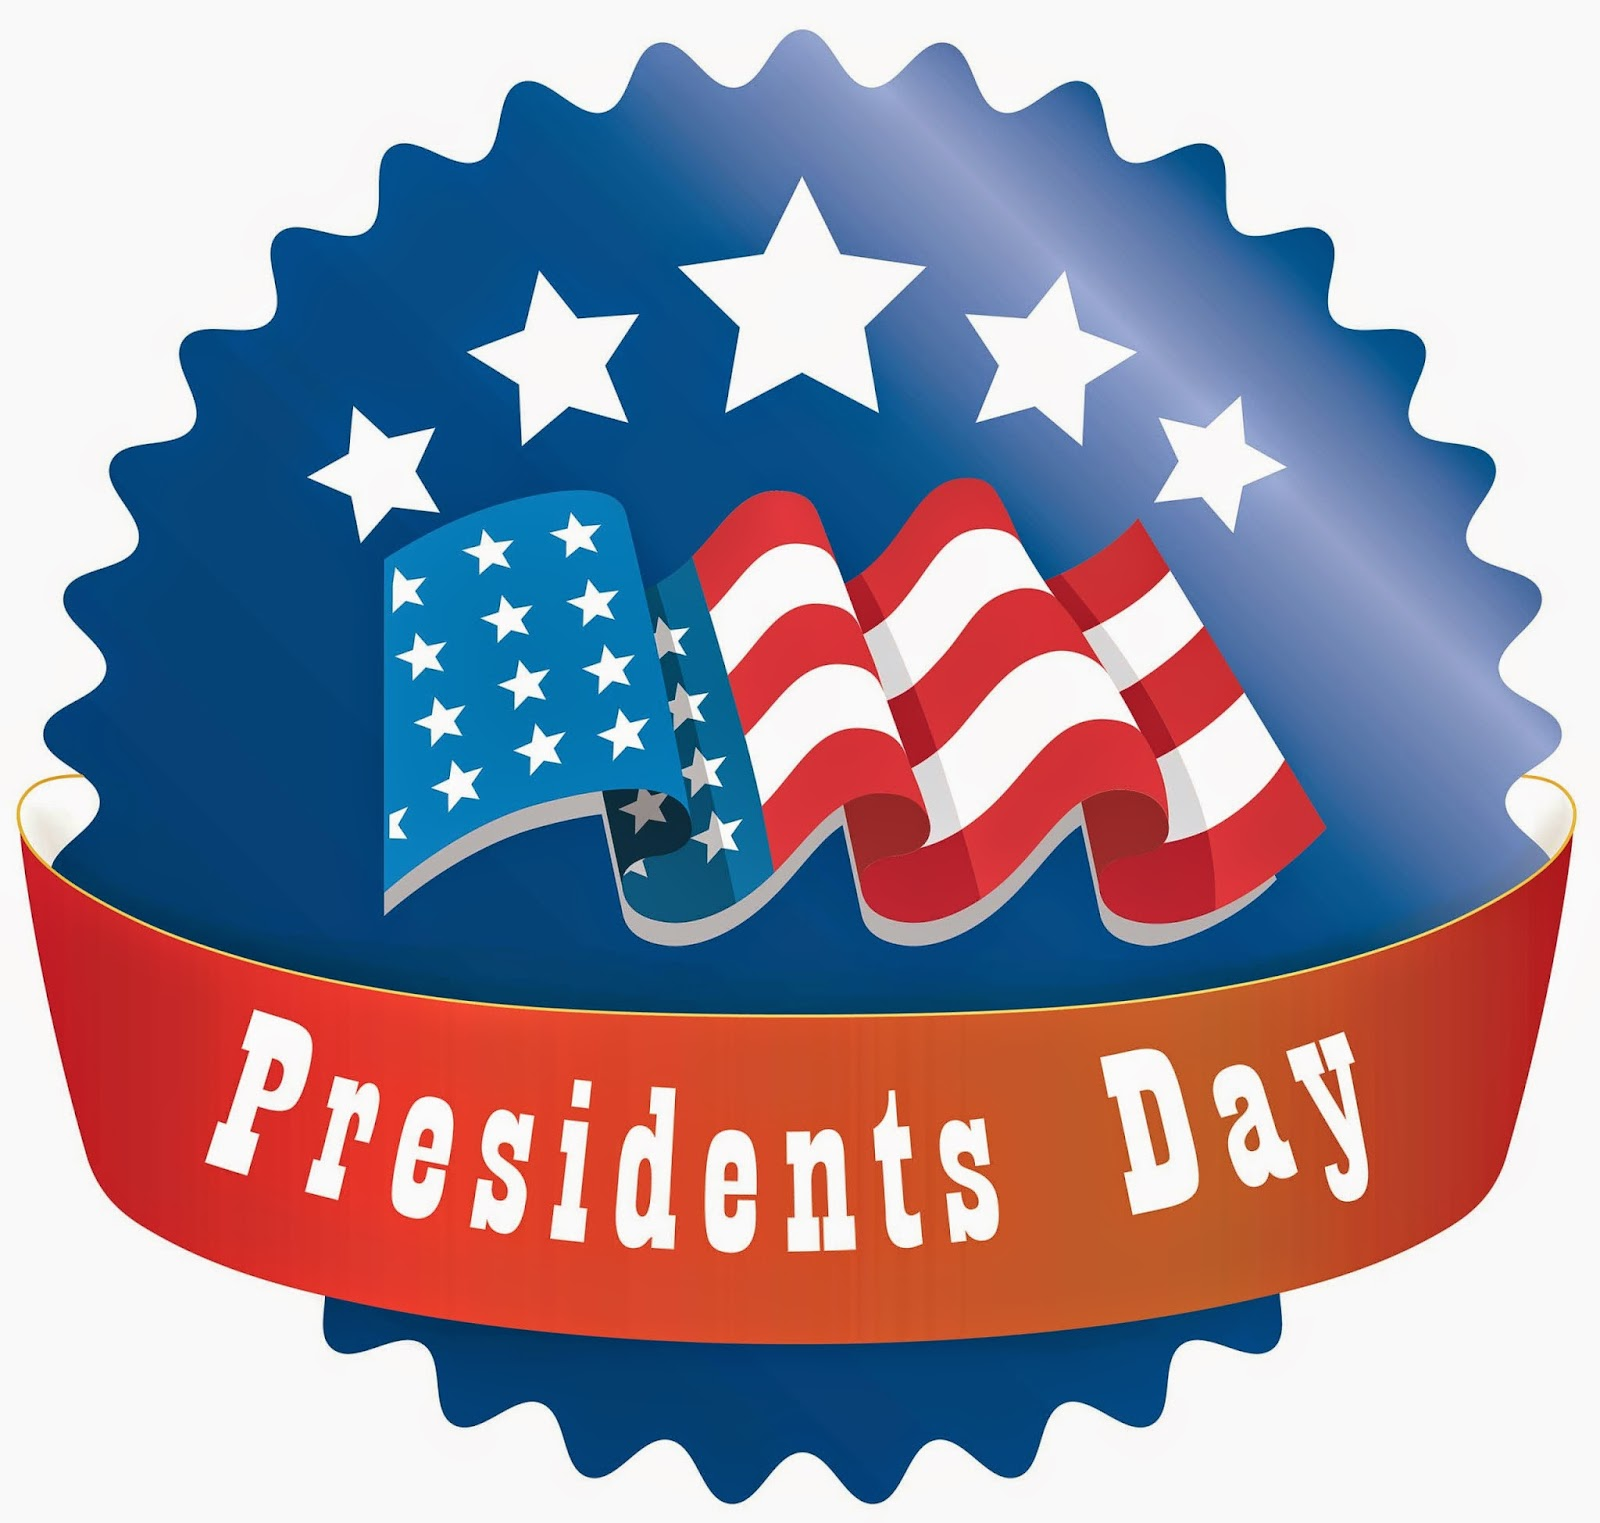 Presidents day memorial day 5 sales quotes wallpapers.